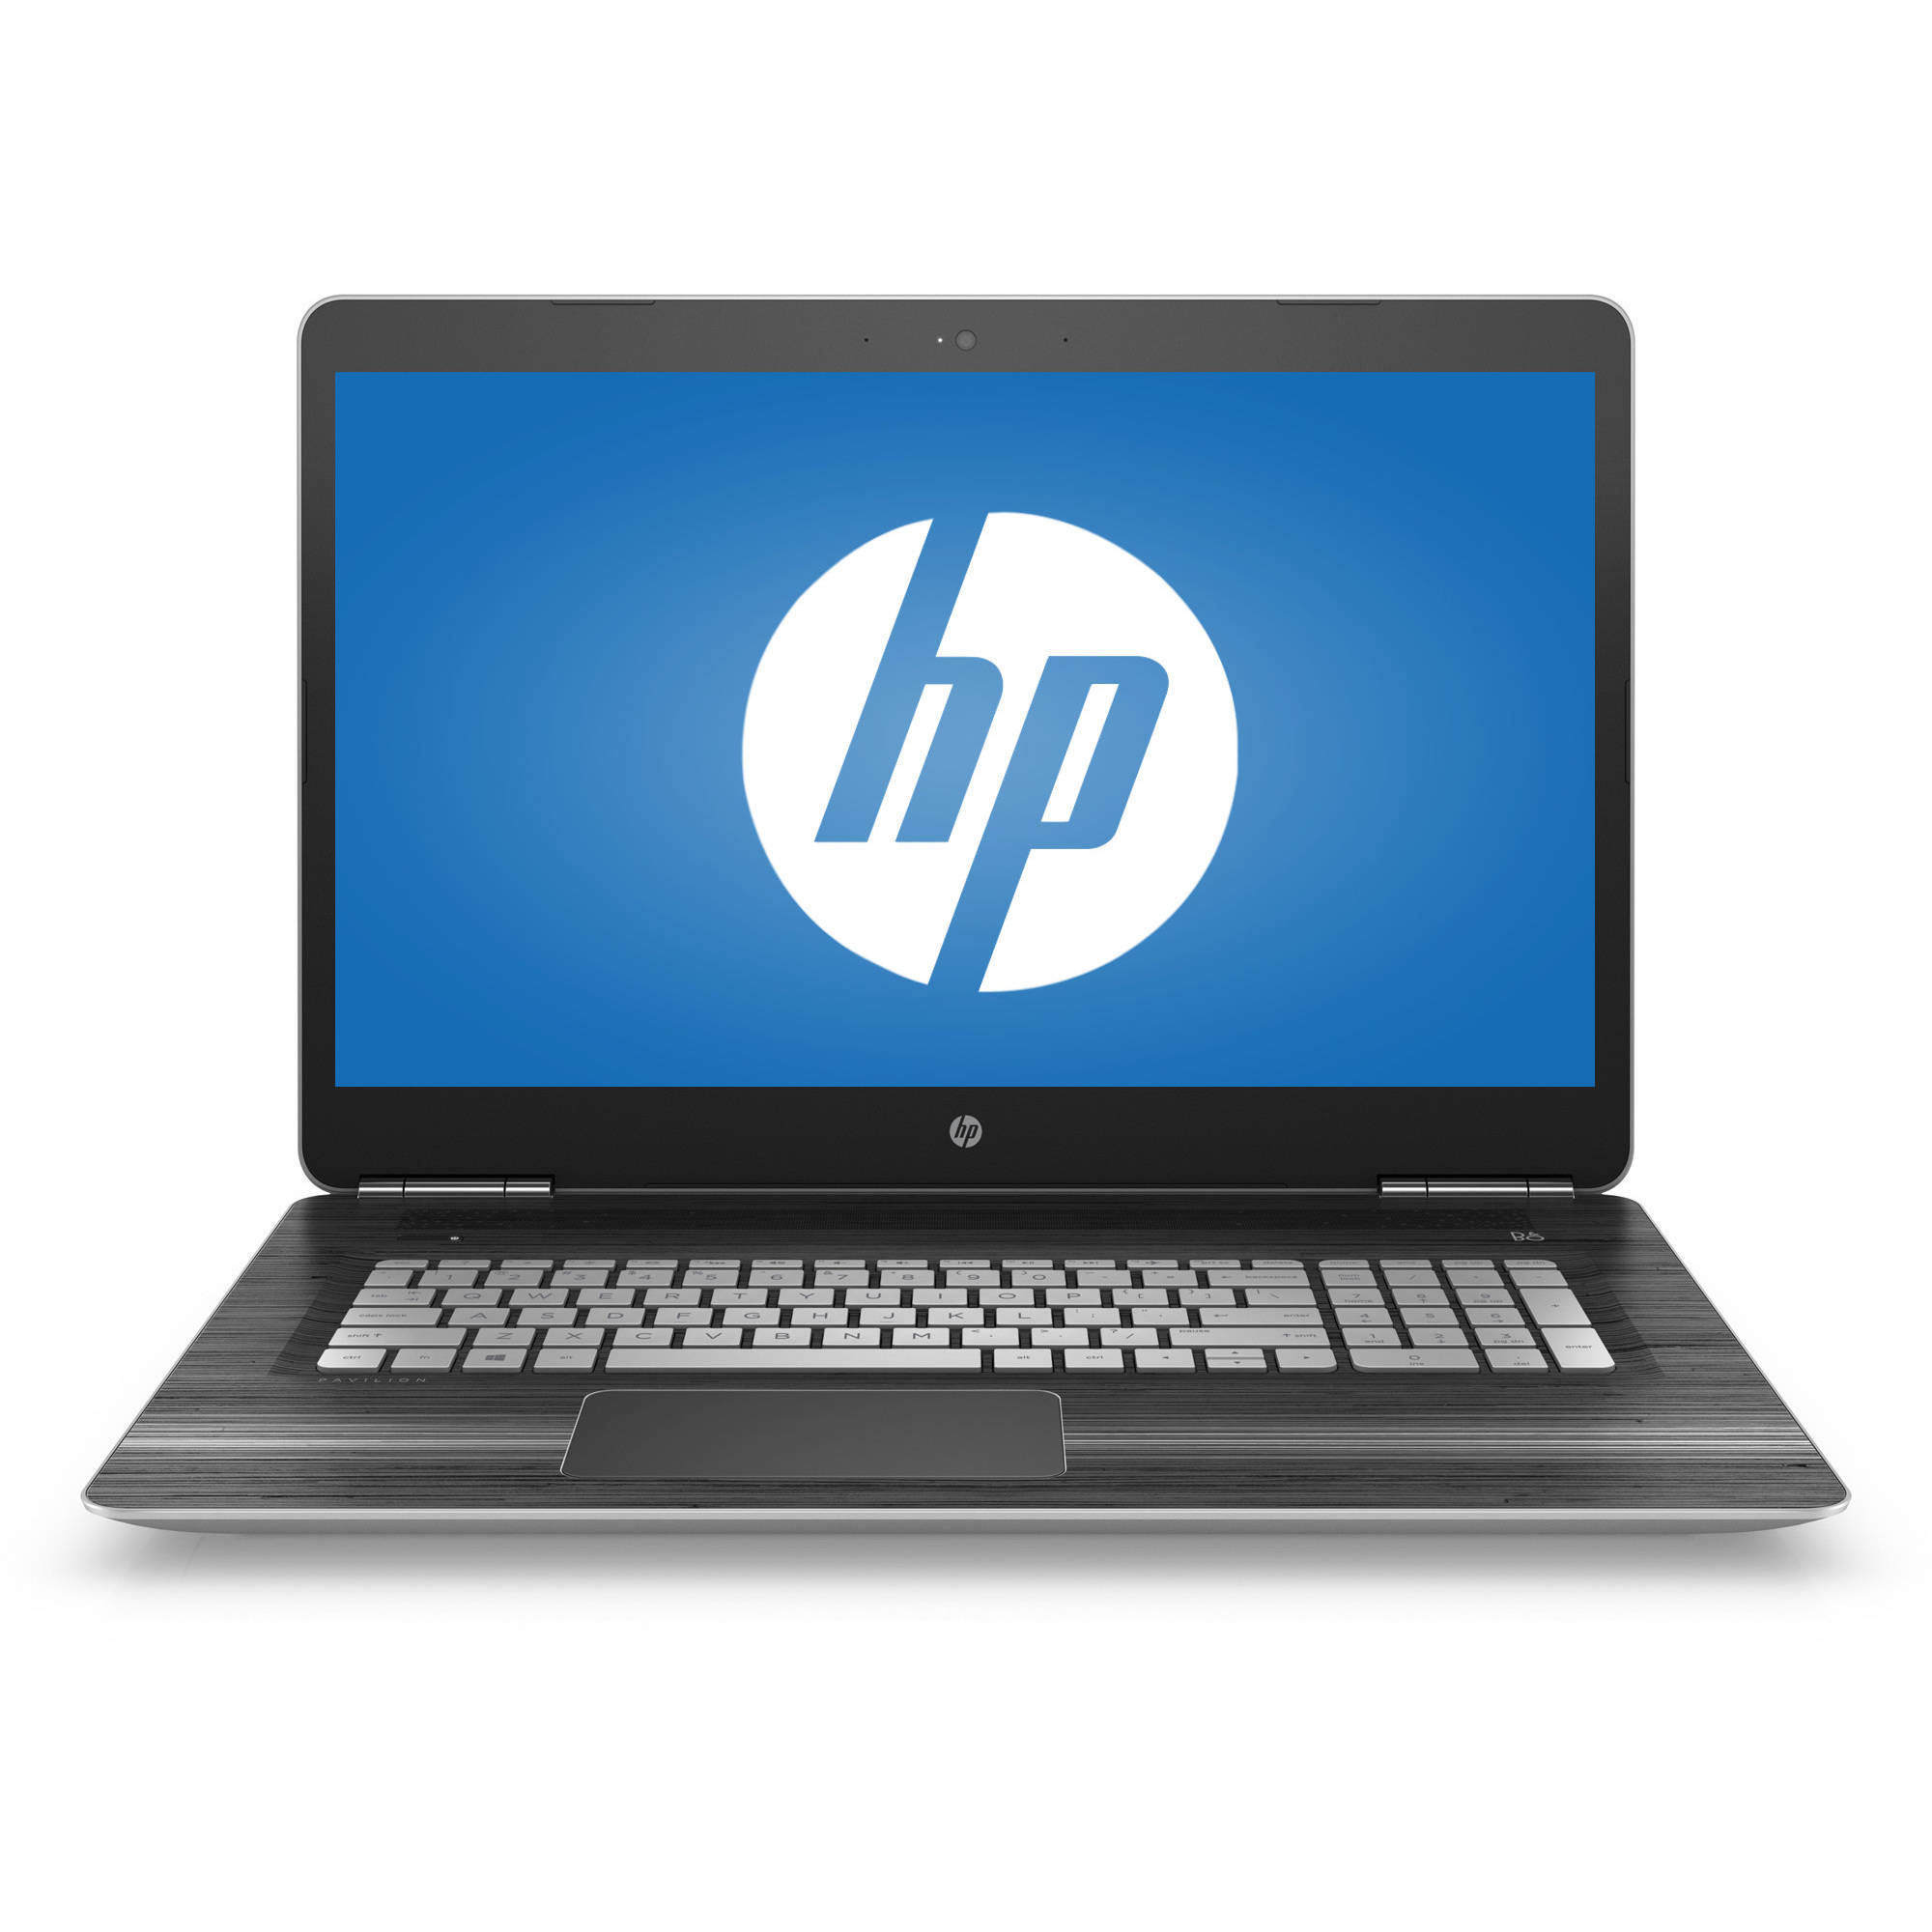 "HP Pavilion 17-ab067nr 17.3"" Laptop, Windows 10 Home, Intel Core i7-6700HQ Processor, 16GB RAM, 1TB Hard Drive"